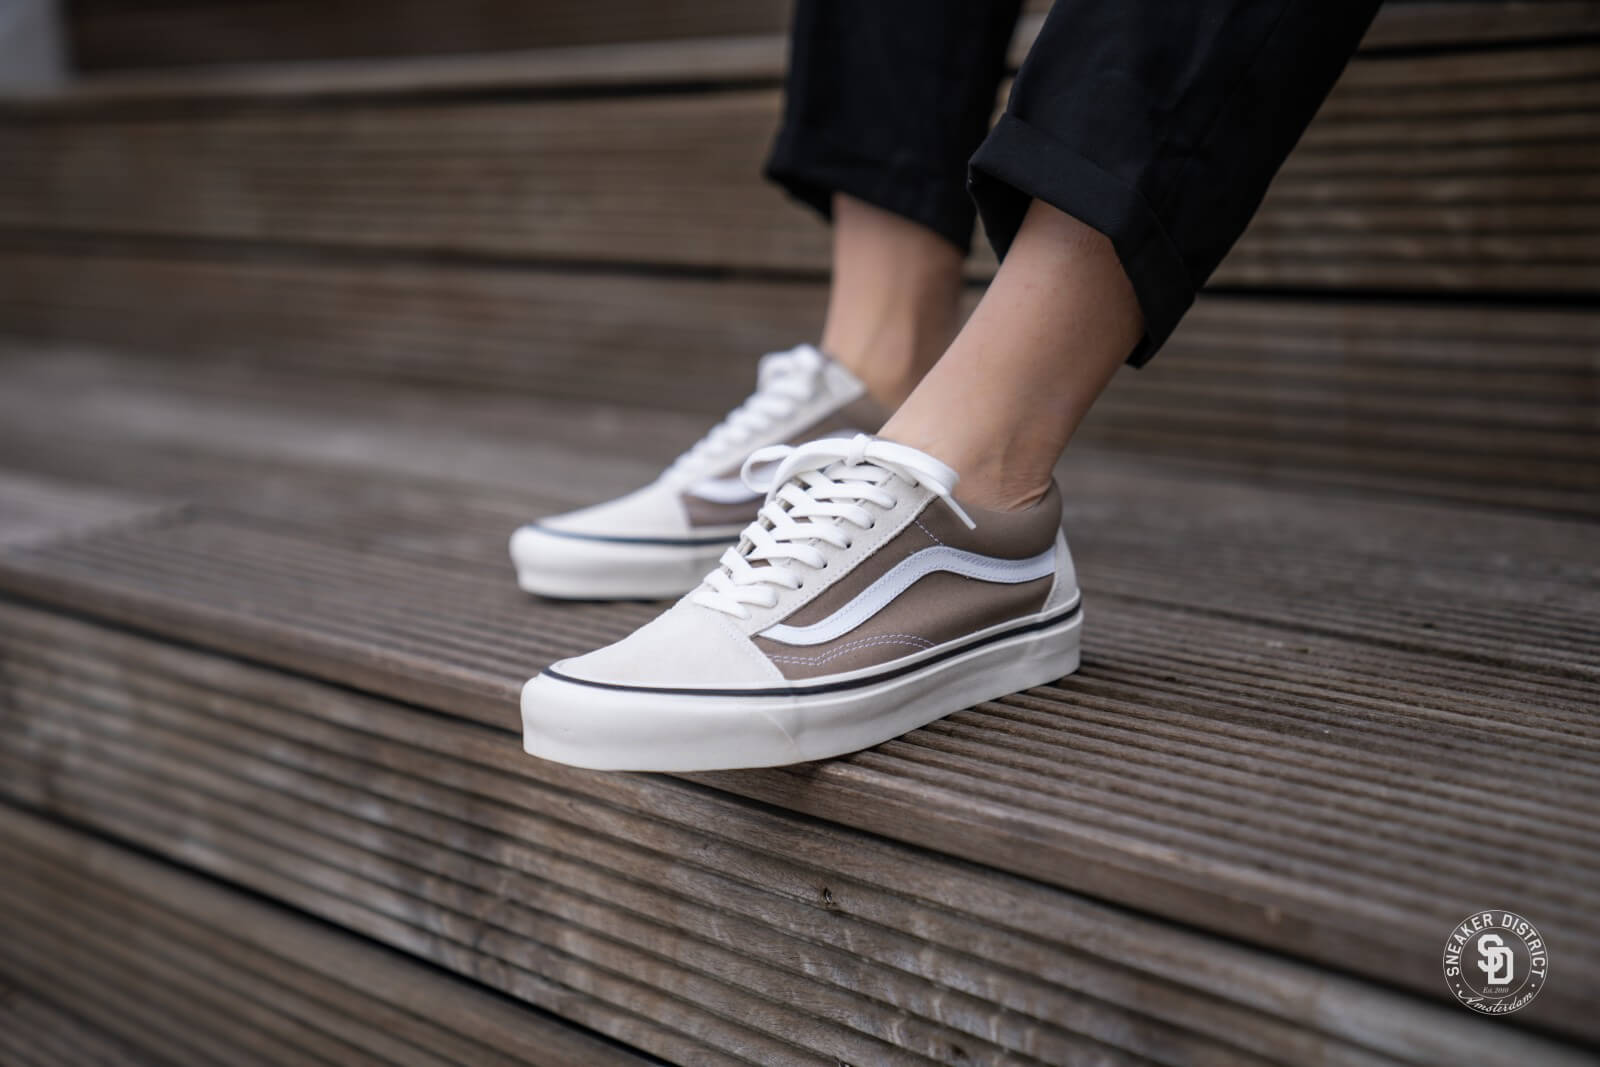 Vans Old Skool 36 DX *Anaheim Factory* | EU 36 – 47 | 85